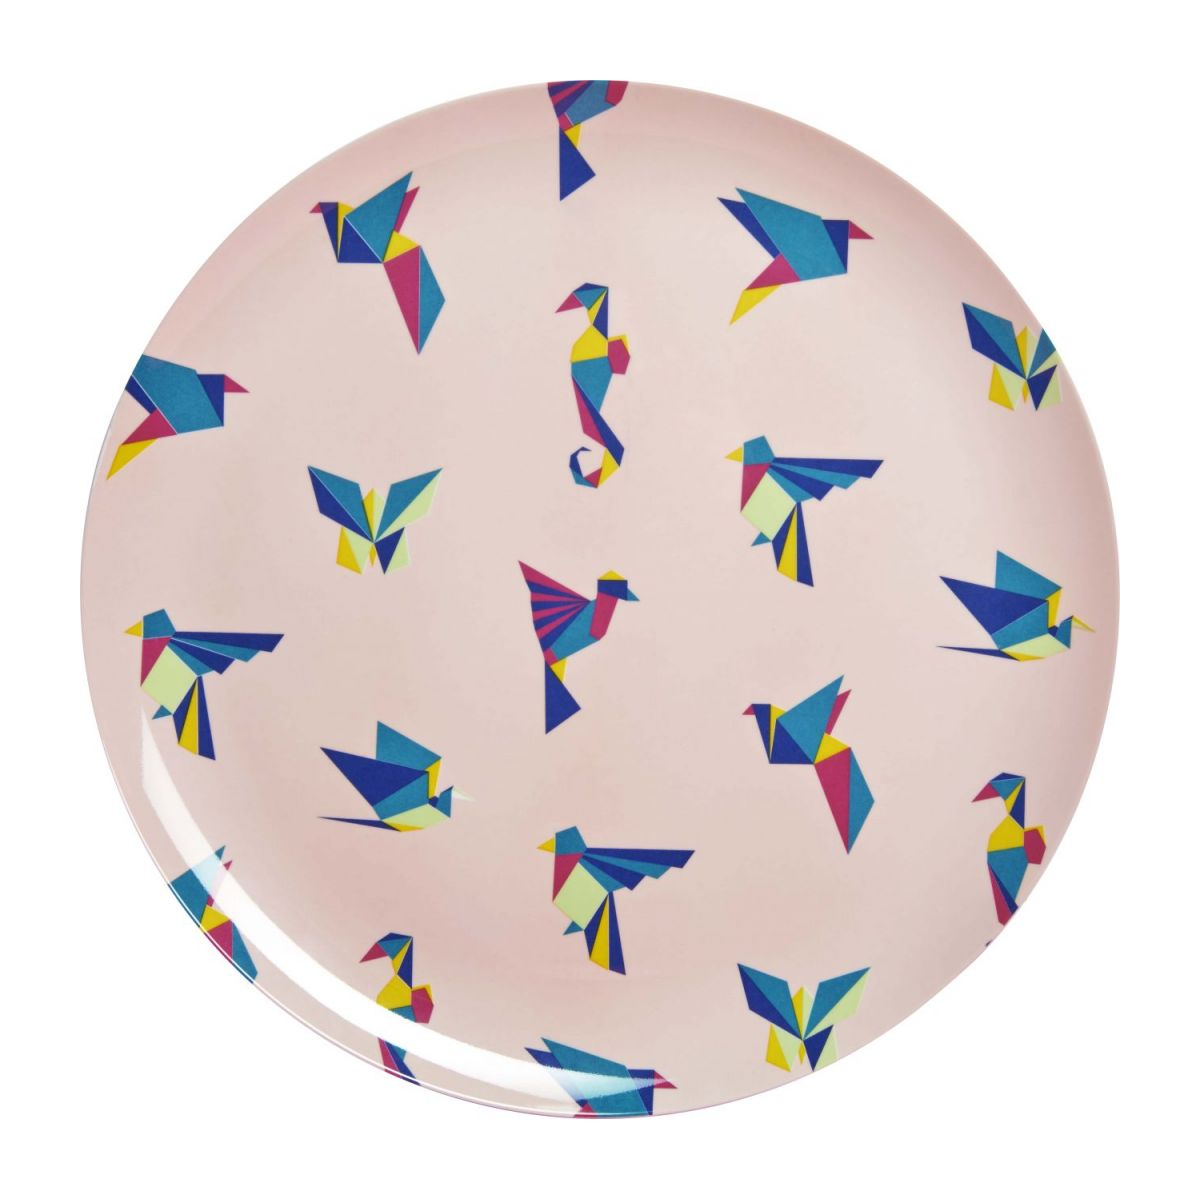 Round patterned tray n°1